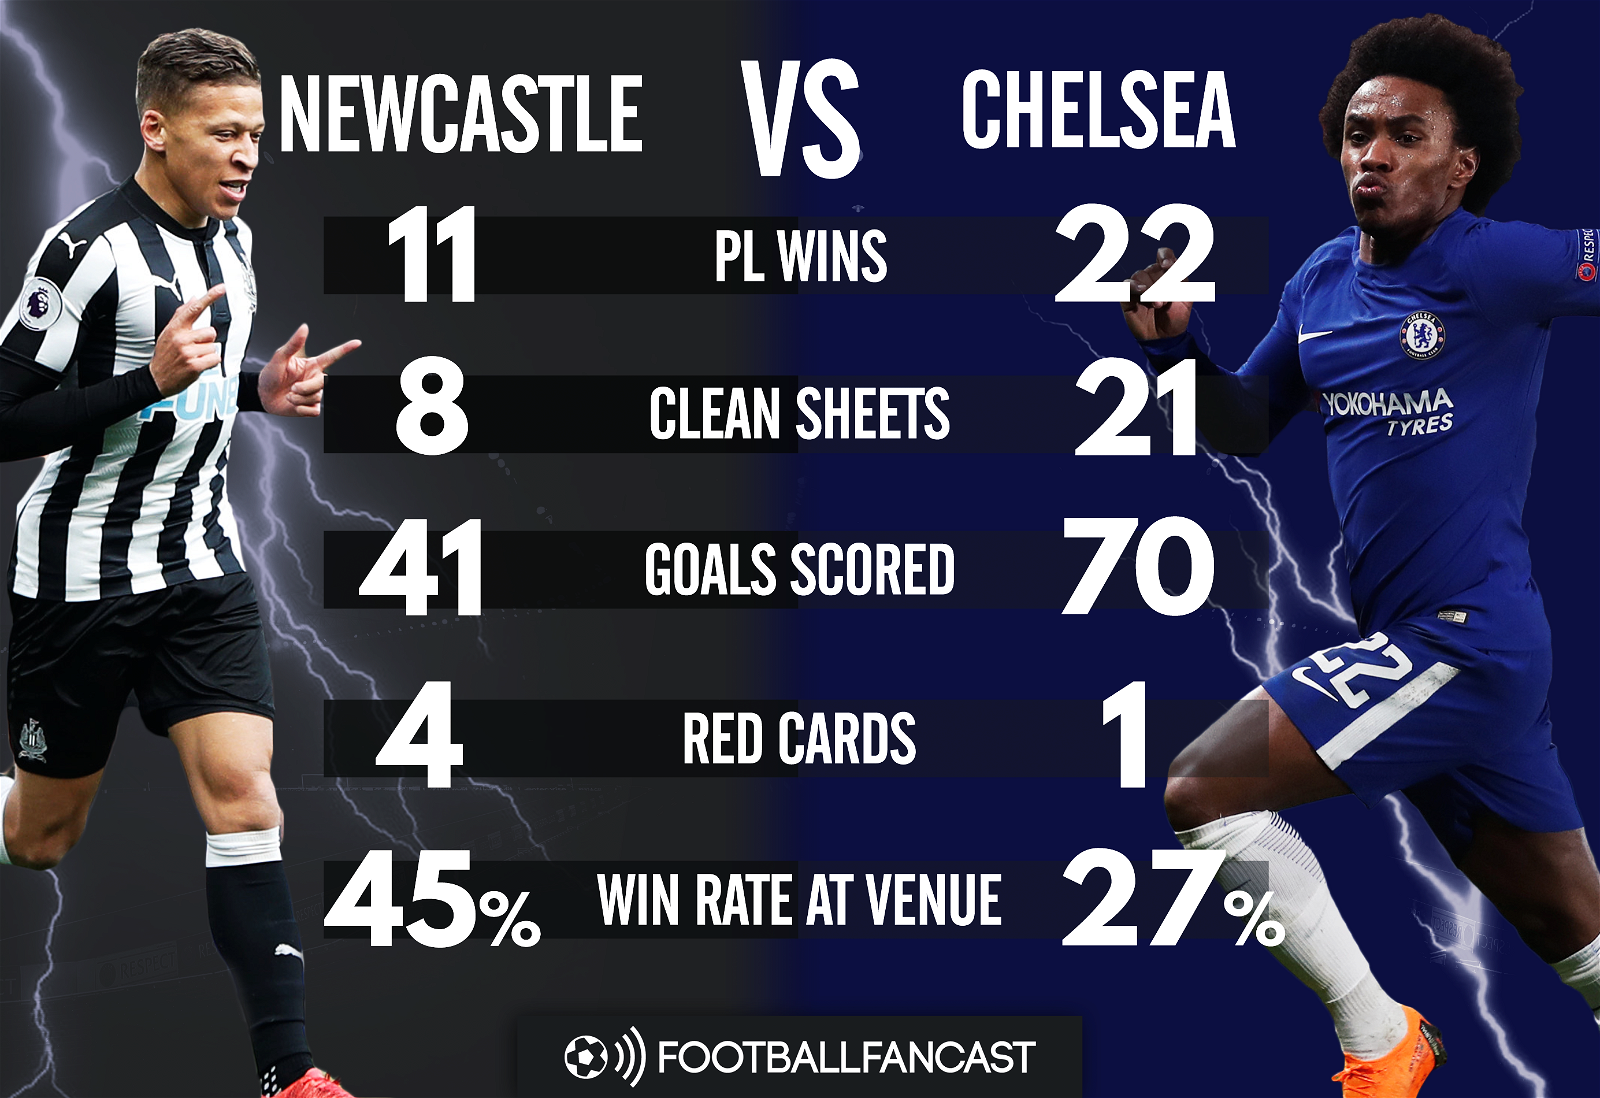 Newcastle vs Chelsea - Head to Head